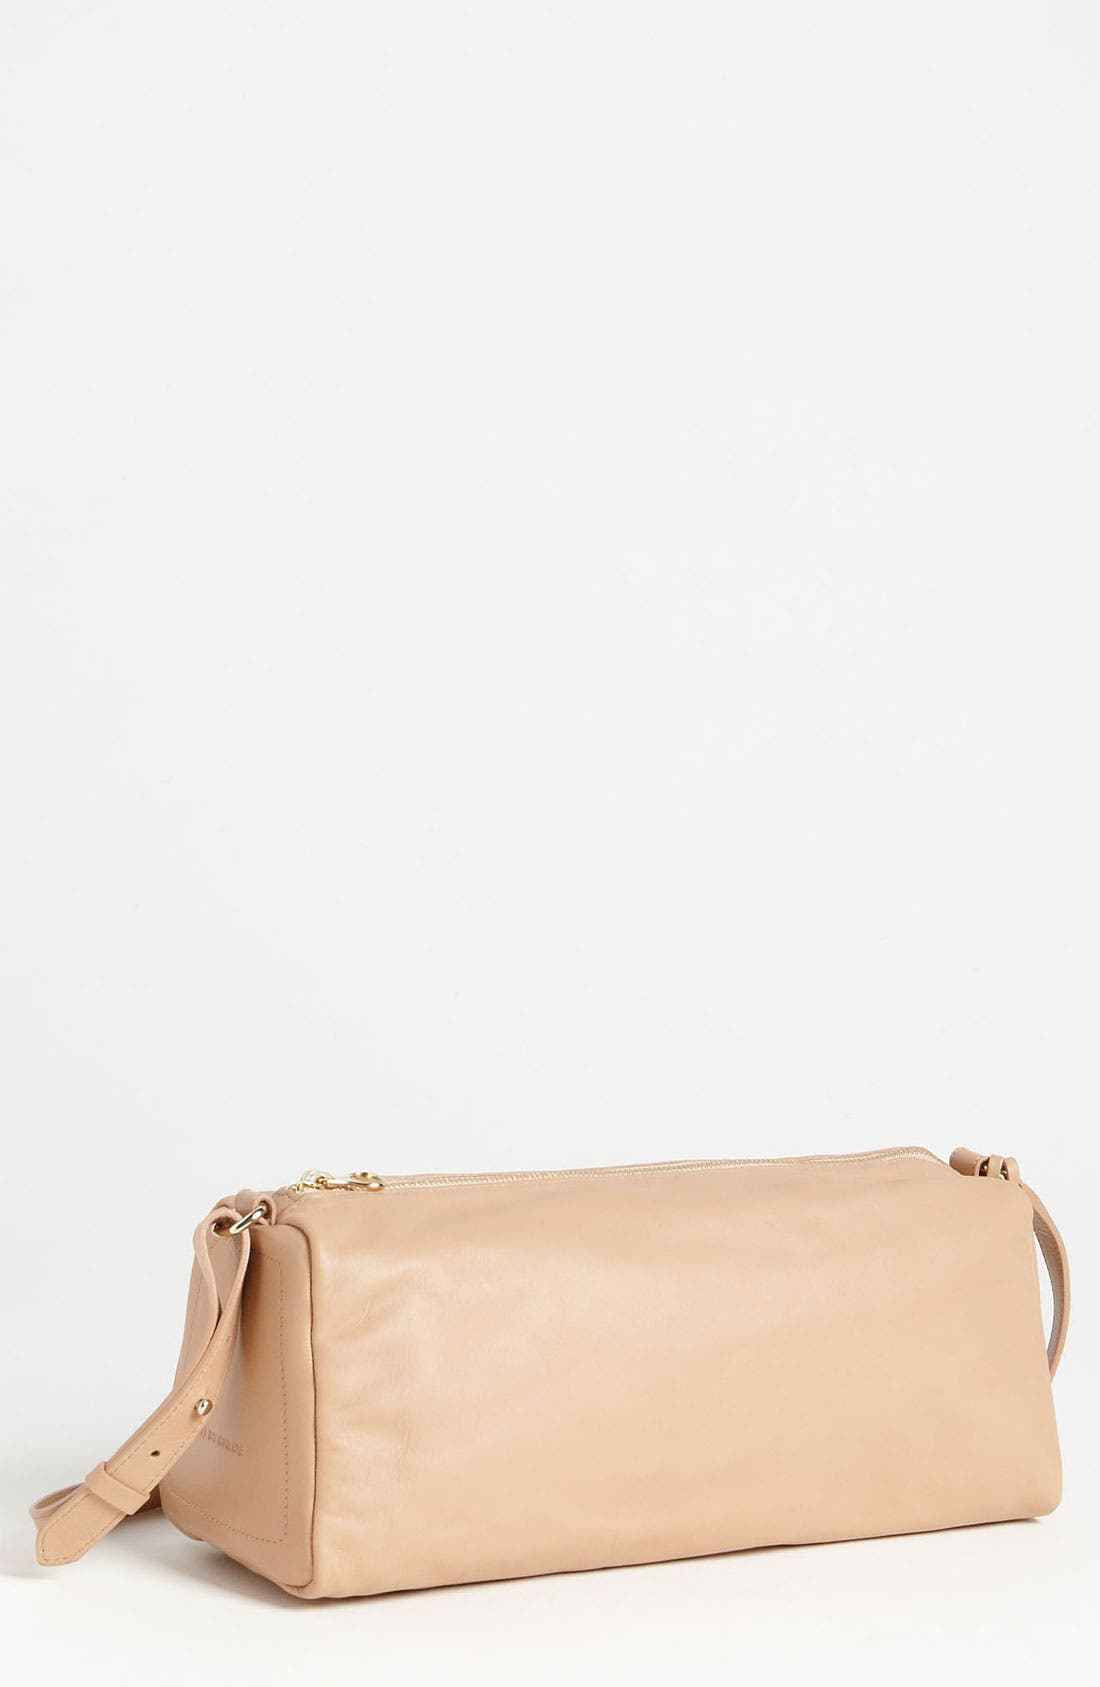 Alternate Image 1 Selected - See by Chloé 'Albane' Crossbody Bag